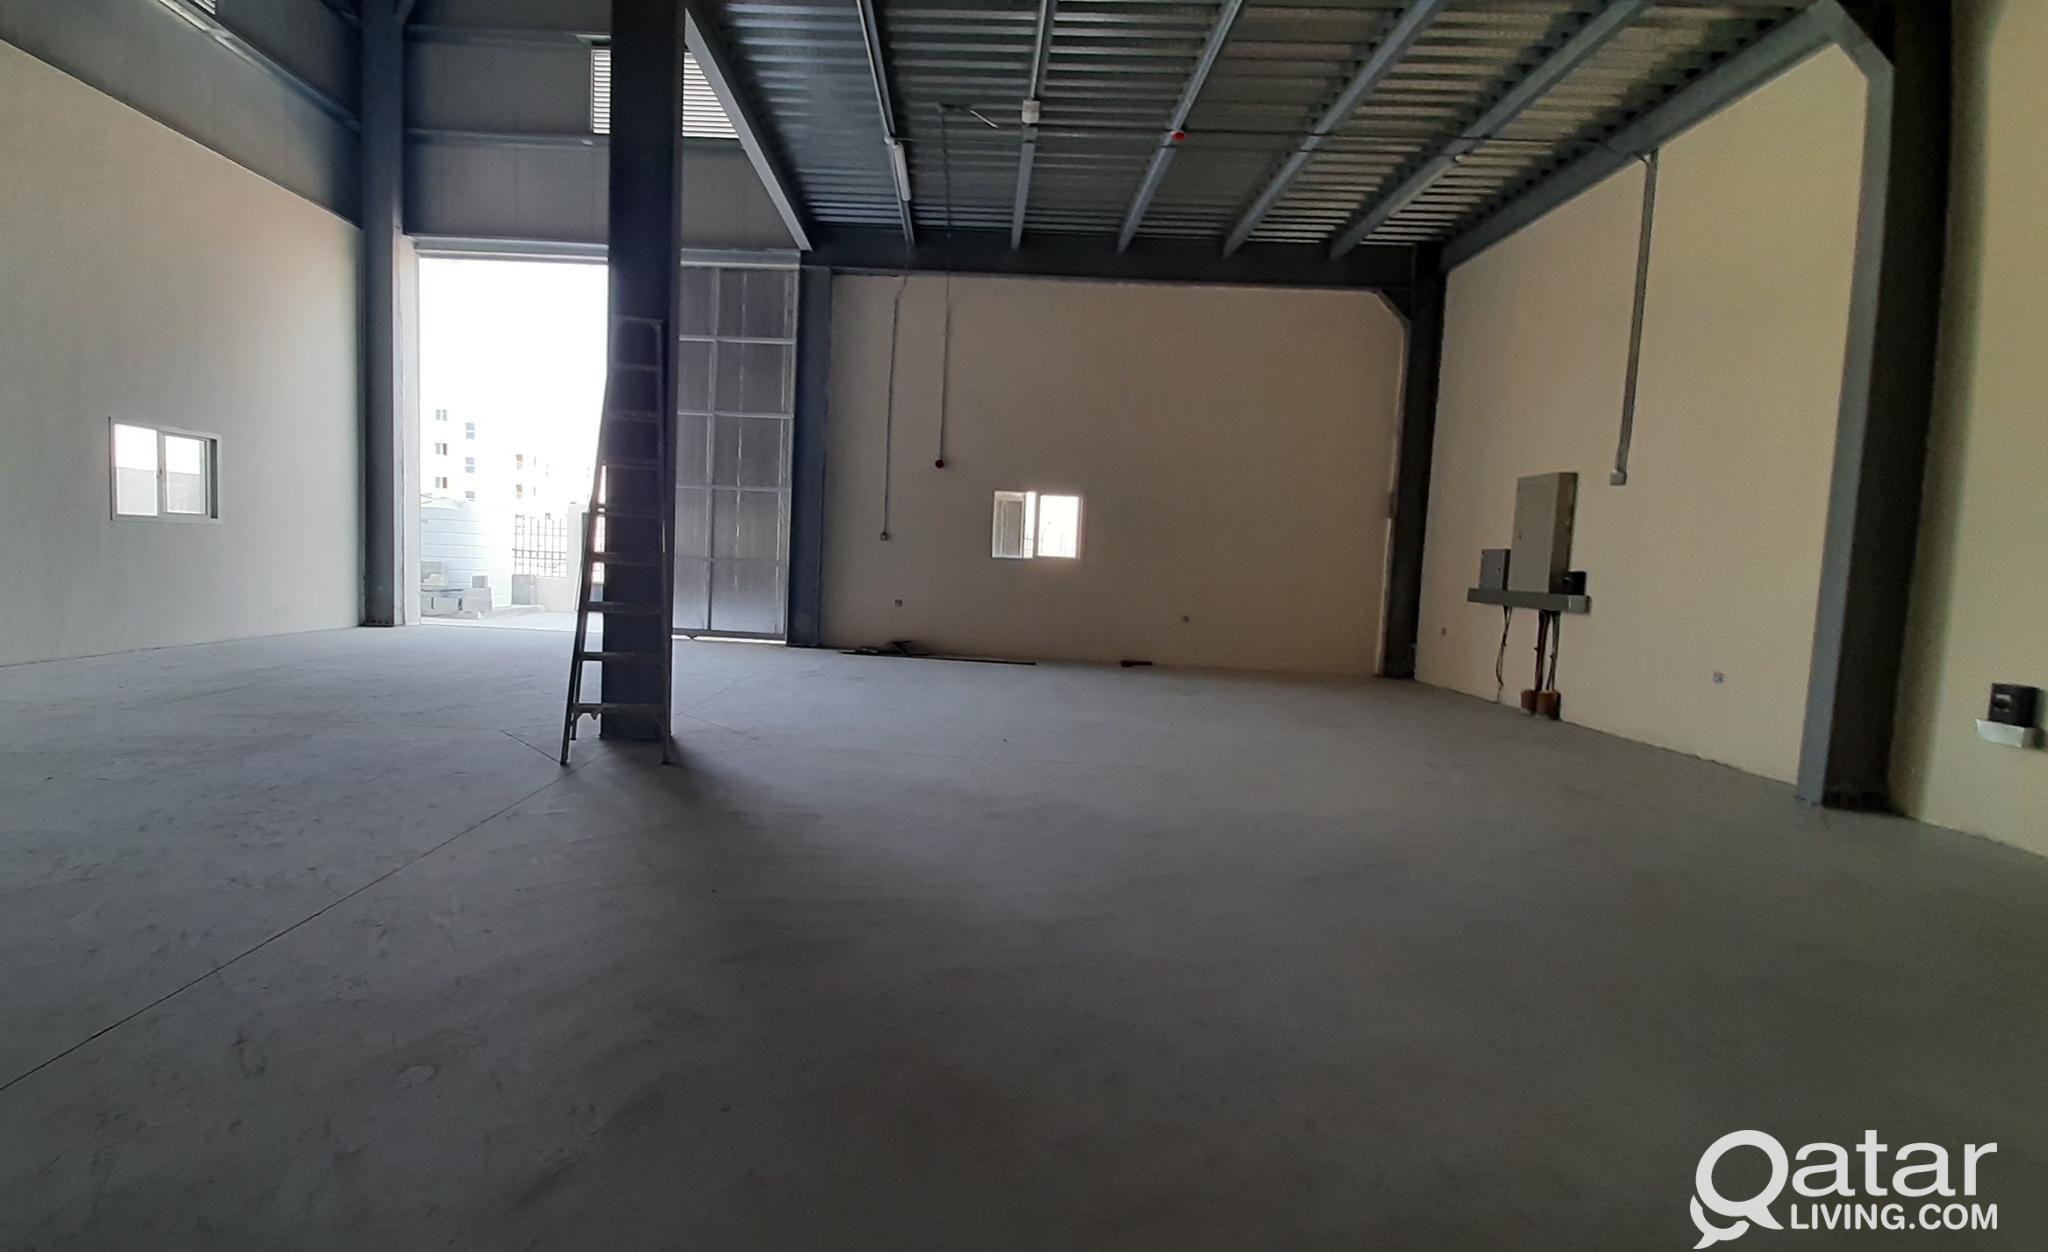 185 SQM STORE FOR RENT IN INDUSTRIAL AREA